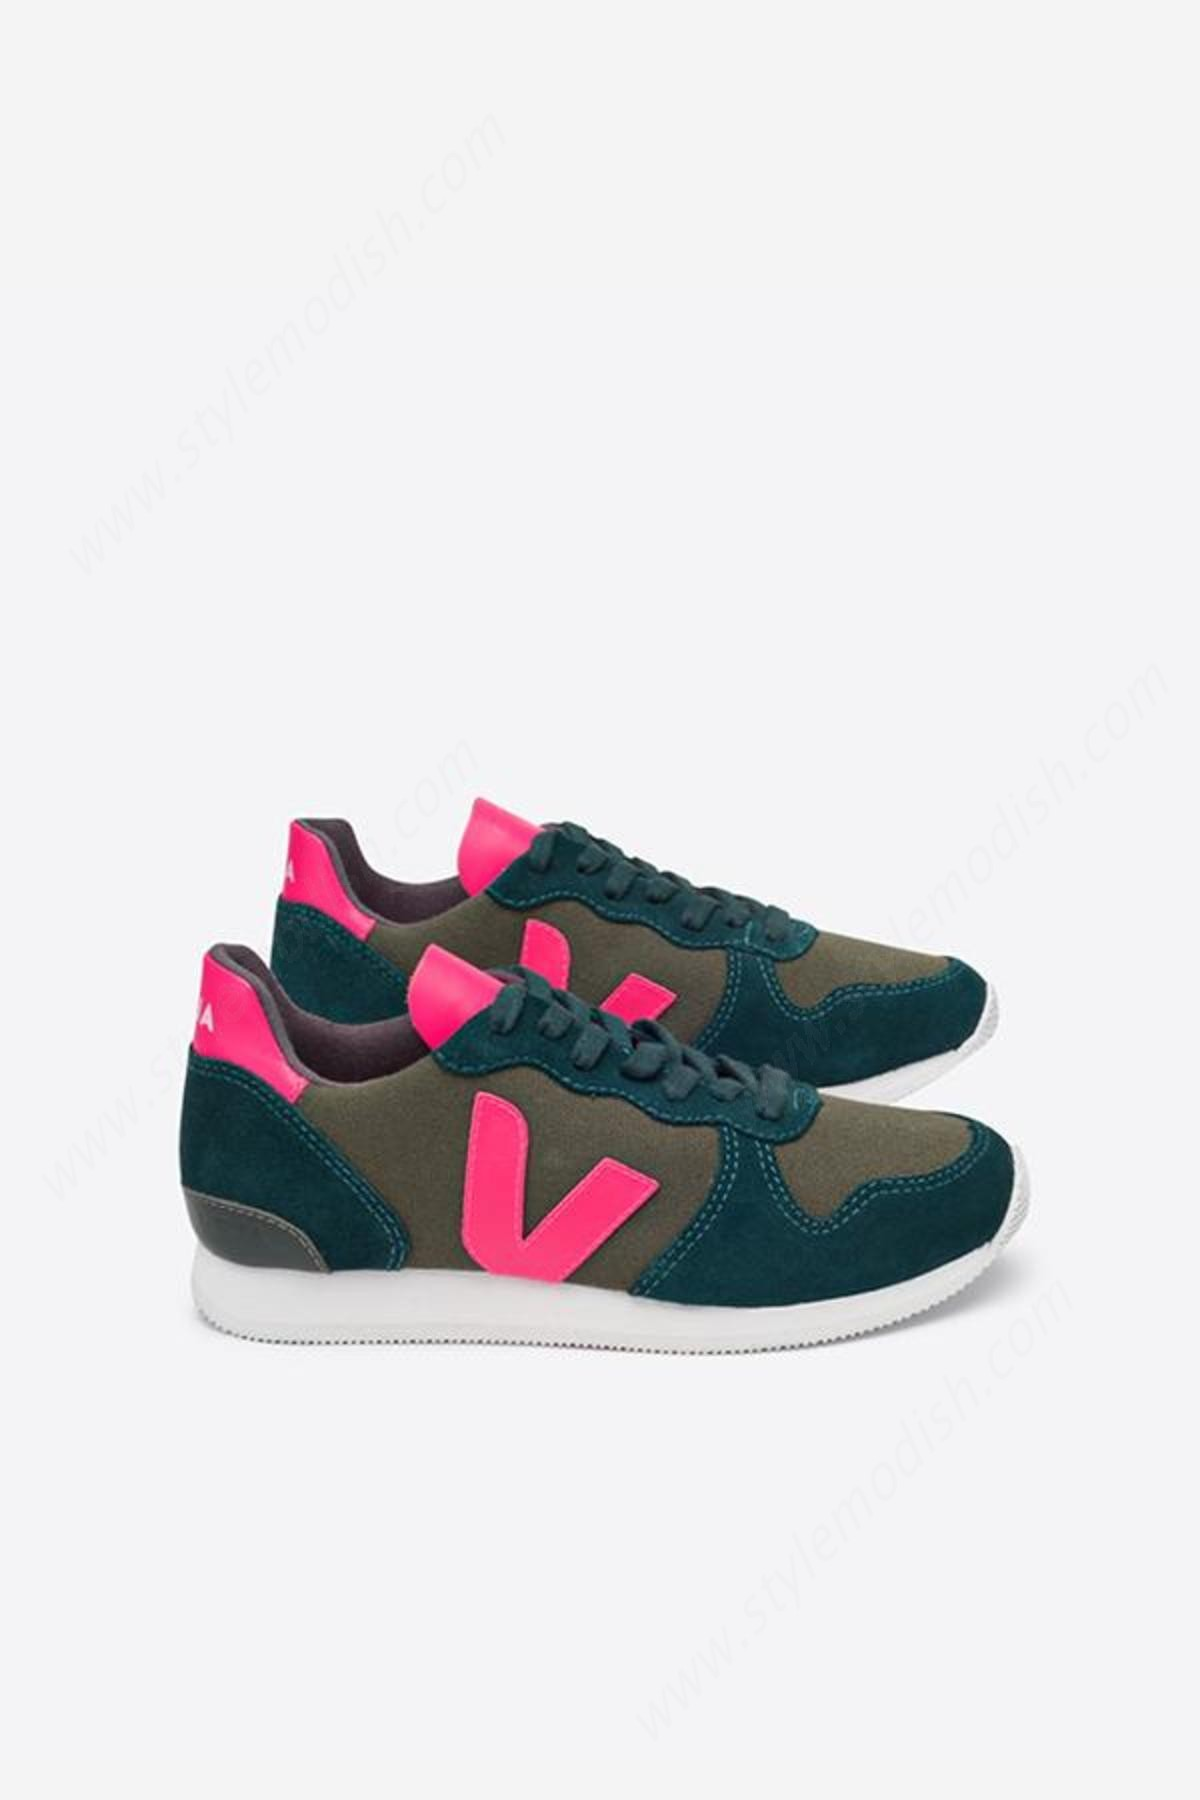 Lady's Veja Holiday - Olive Cambridge Rose Fluo Sneaker - -1